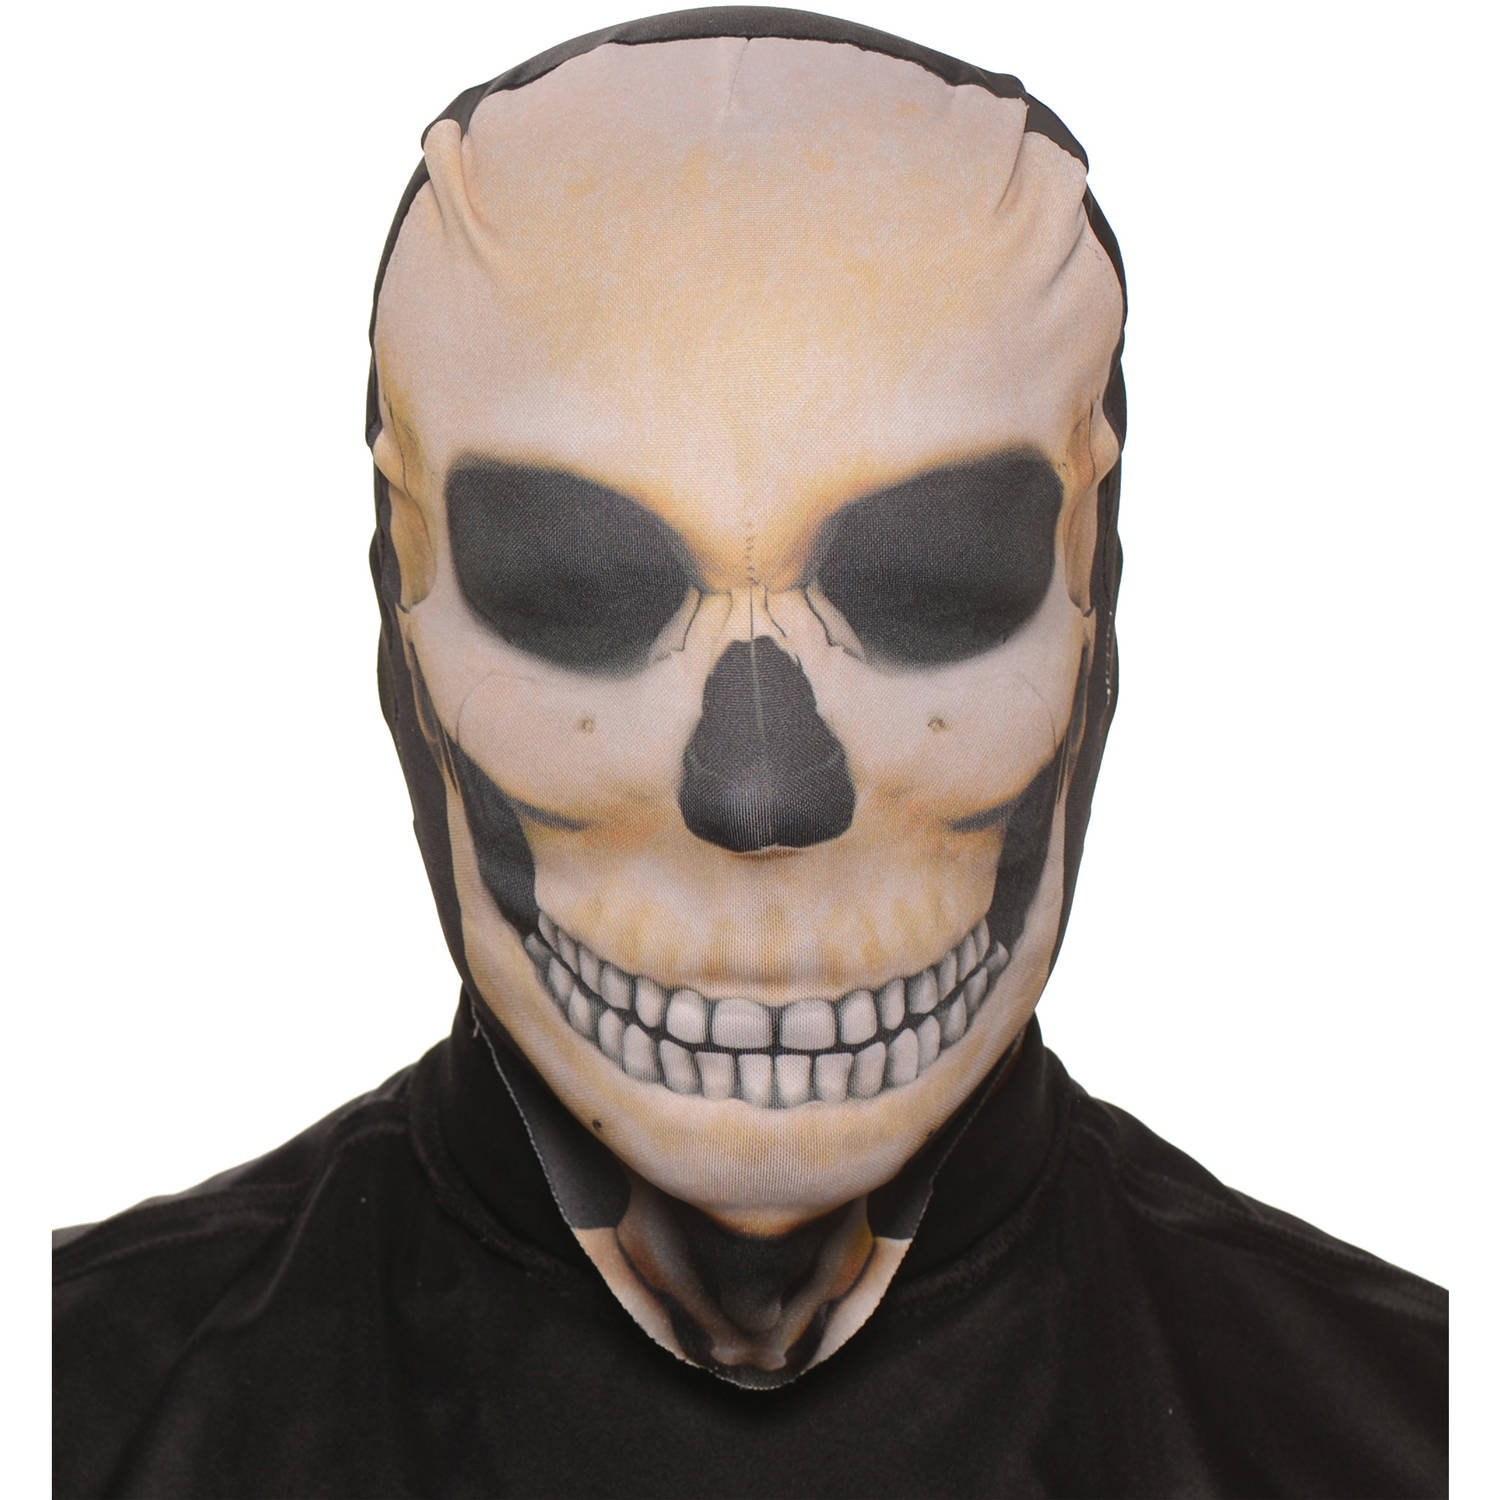 Skull Skin Mask Adult Halloween Accessory